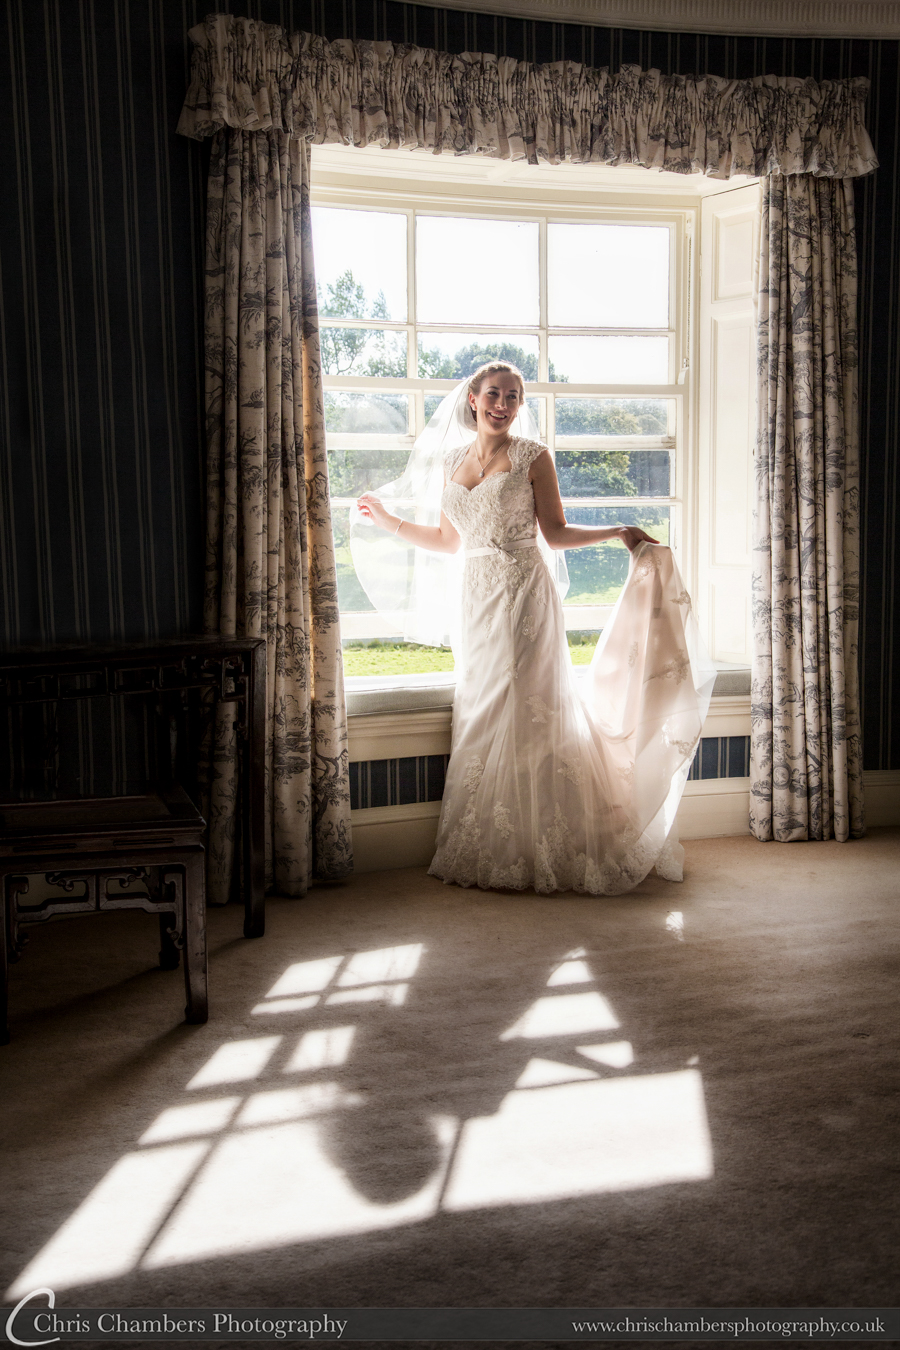 Swinton park weddings, wedding photography at Swinton Park near Masham north yorkshire